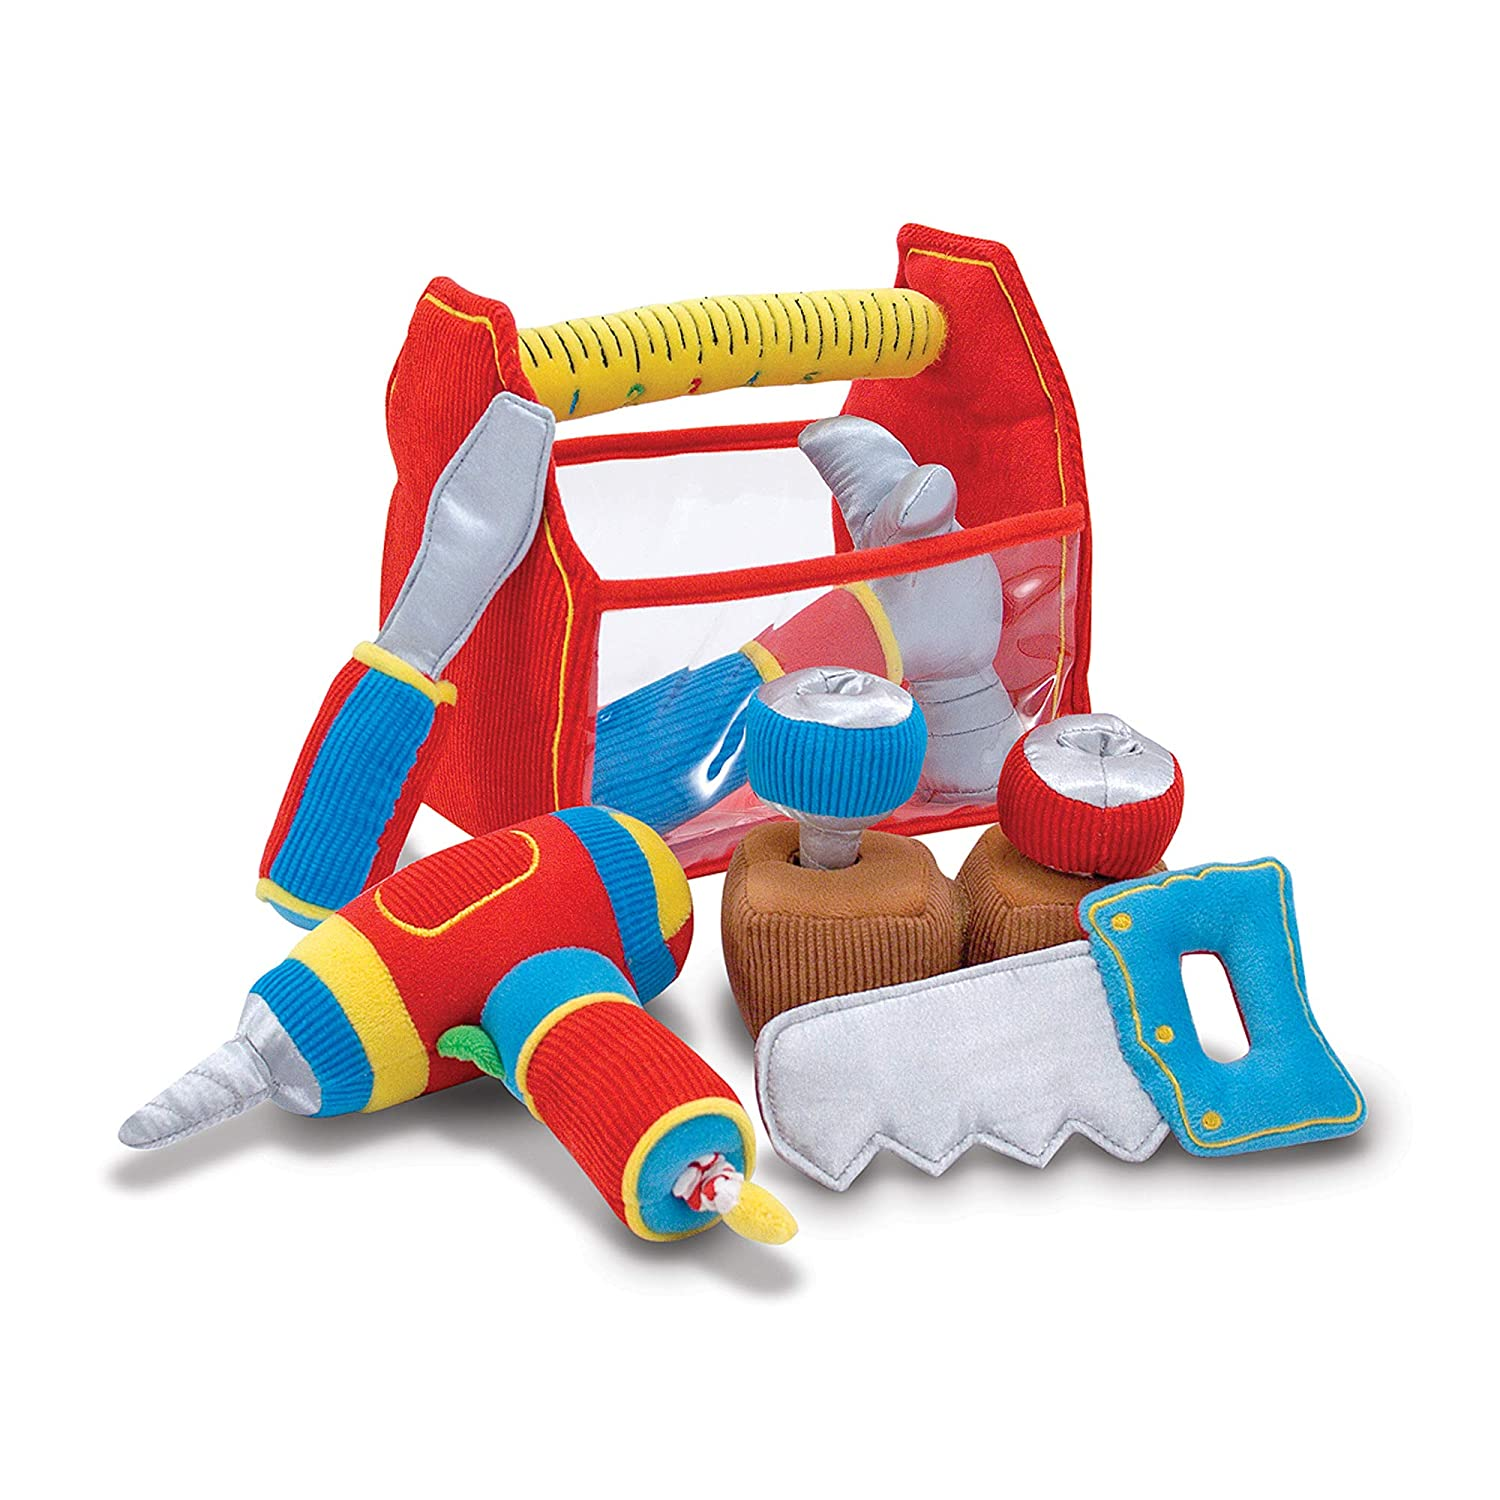 Melissa & Doug Toolbox Fill and Spill Toddler Toy With Vibrating Drill  (9 pcs)